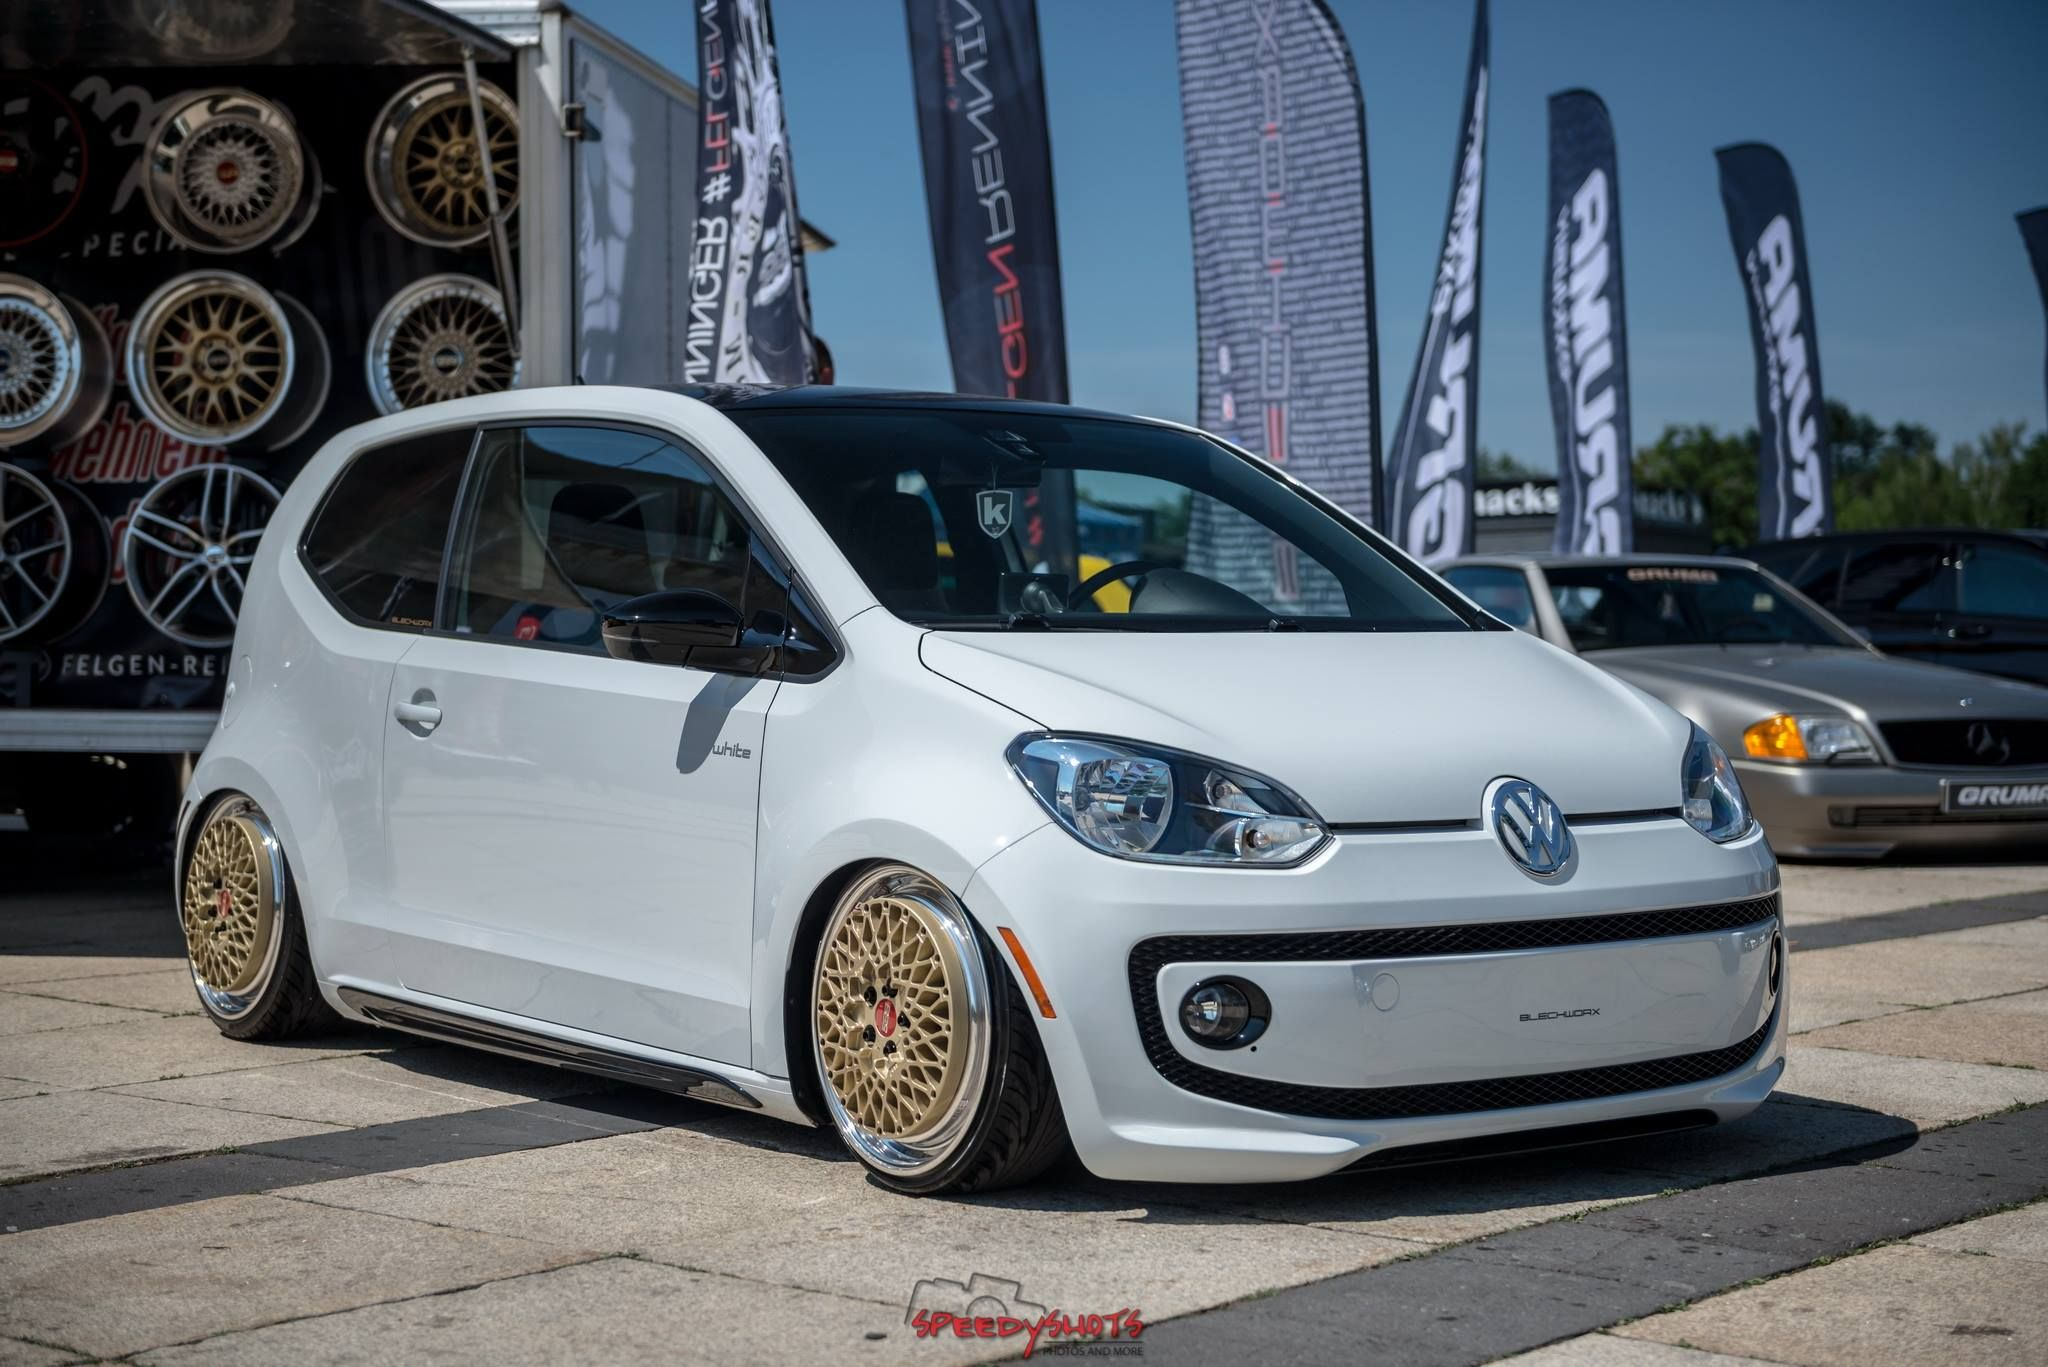 Pin By Aslak Breiseth On Vw Vw Up Power Cars Cool Cars